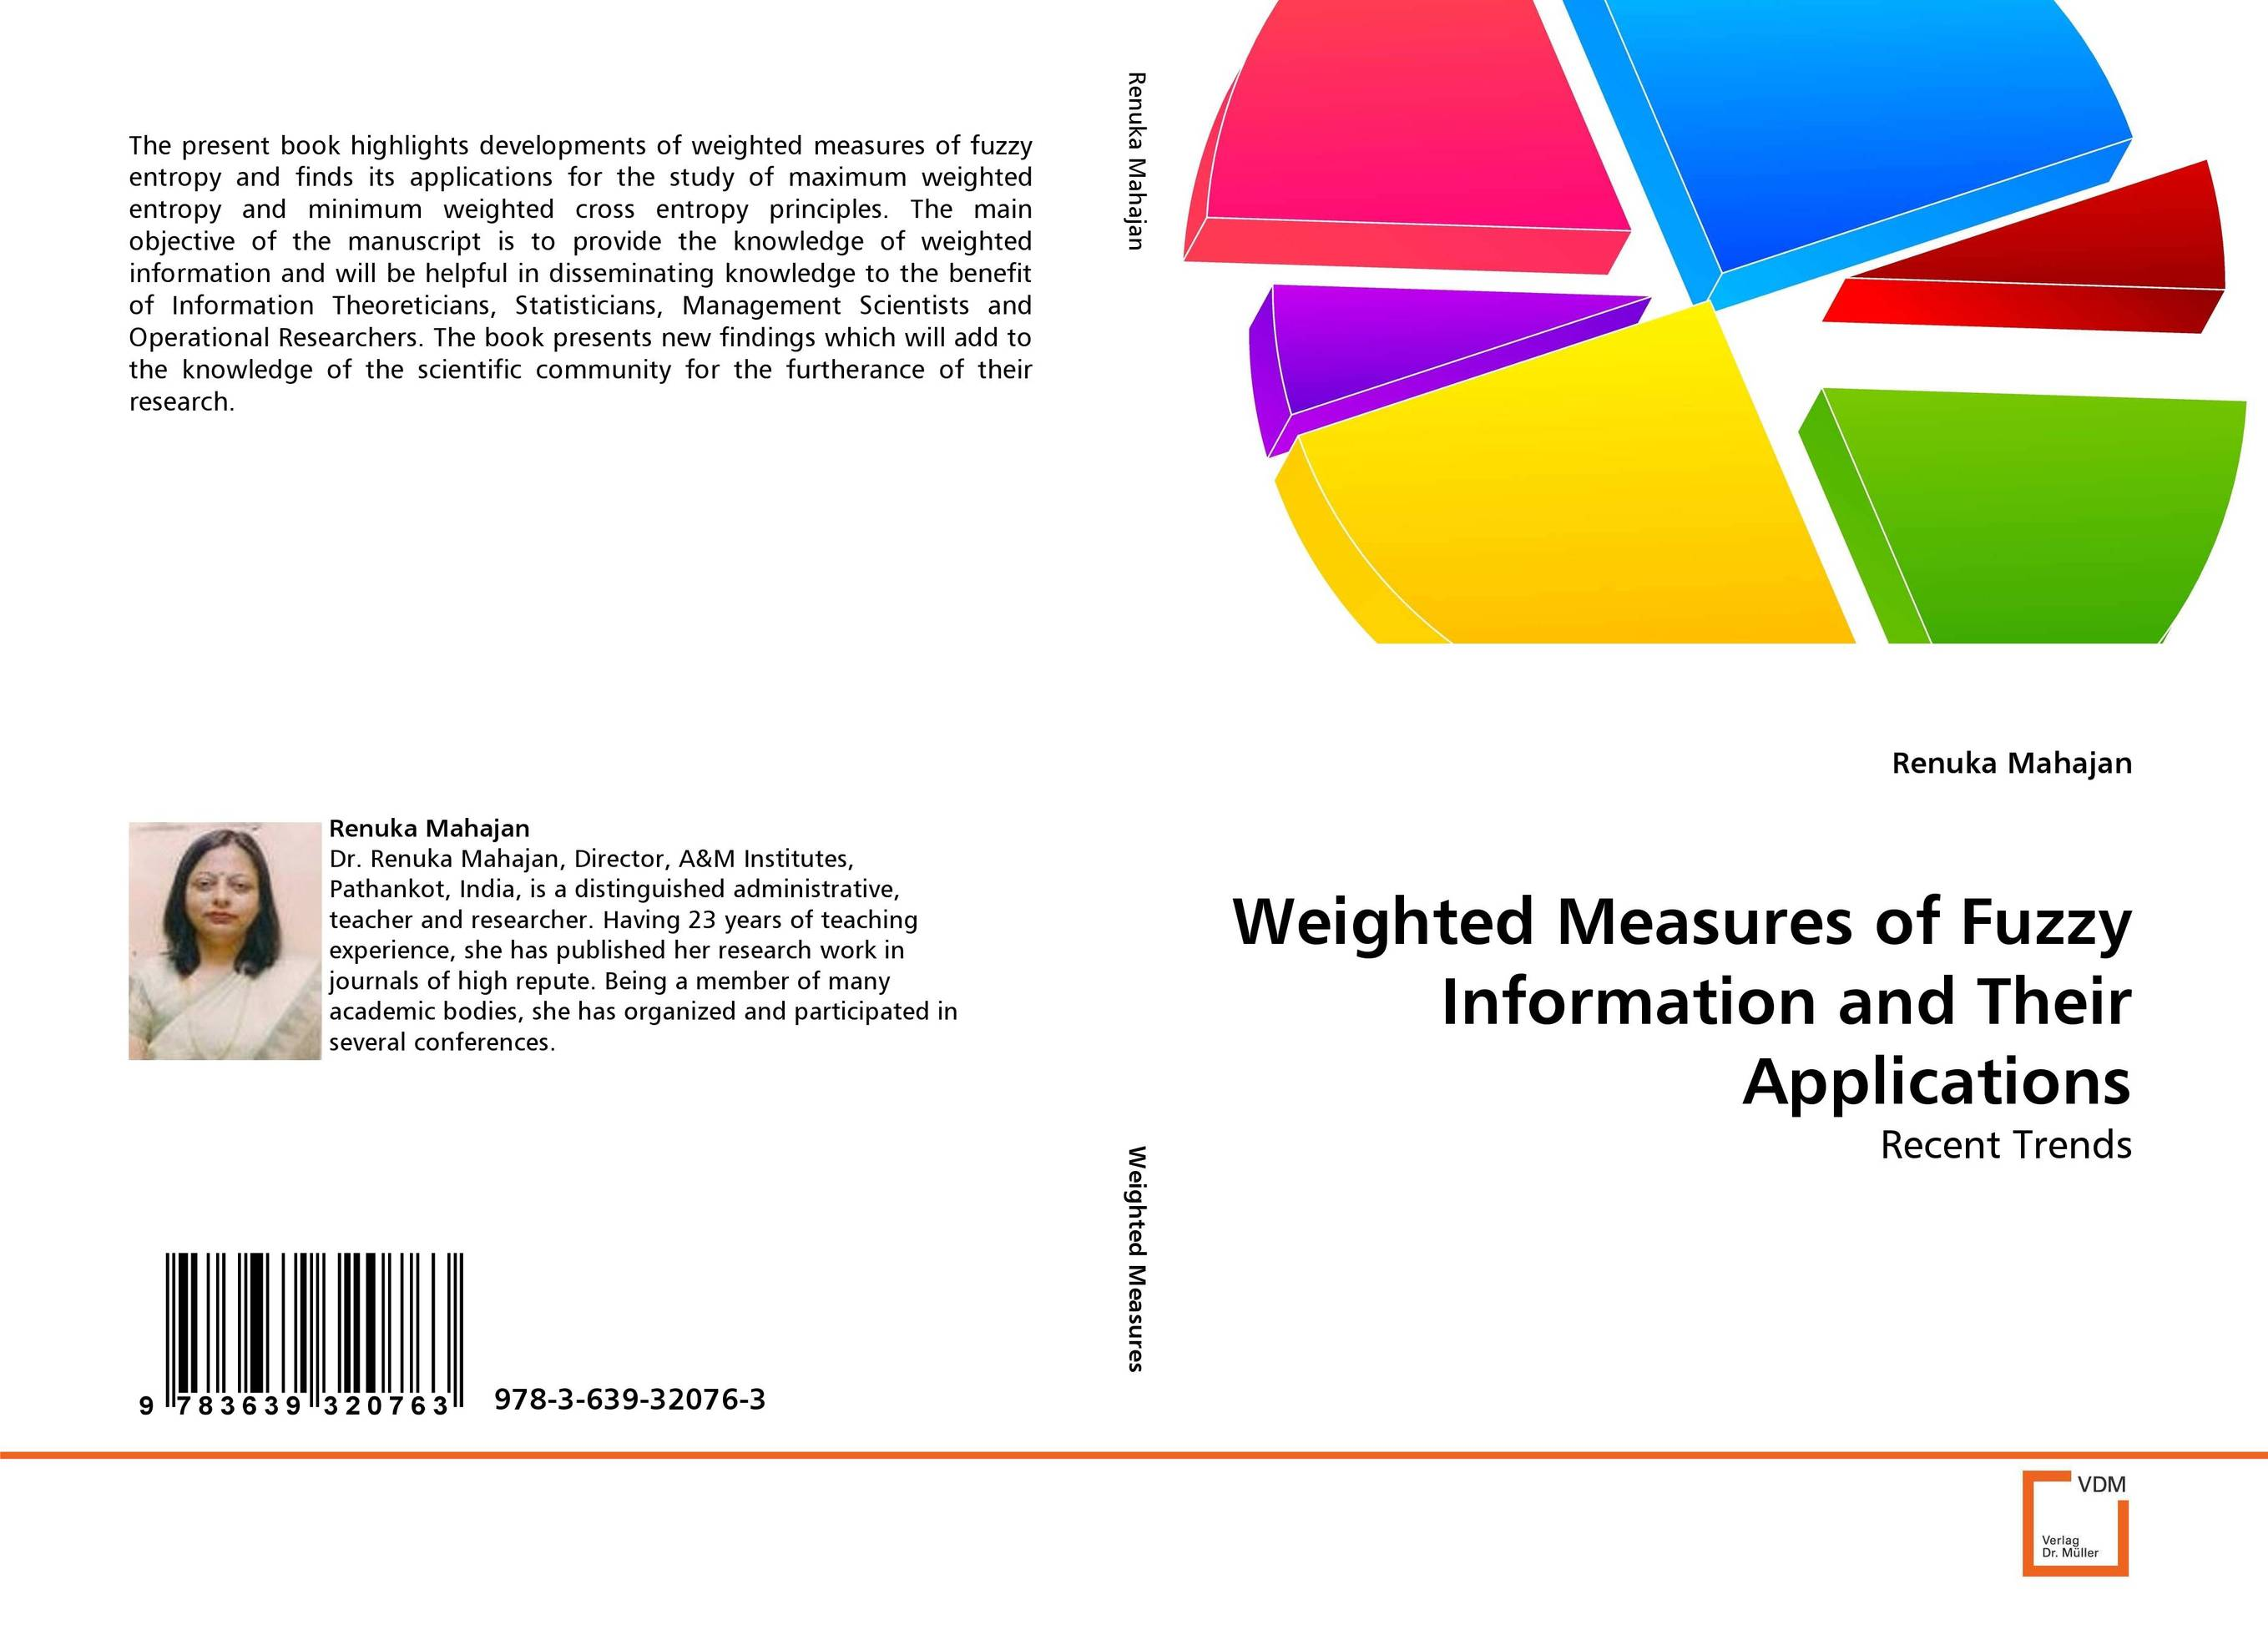 Weighted Measures of Fuzzy Information and Their Applications lisa disselkamp workforce asset management book of knowledge